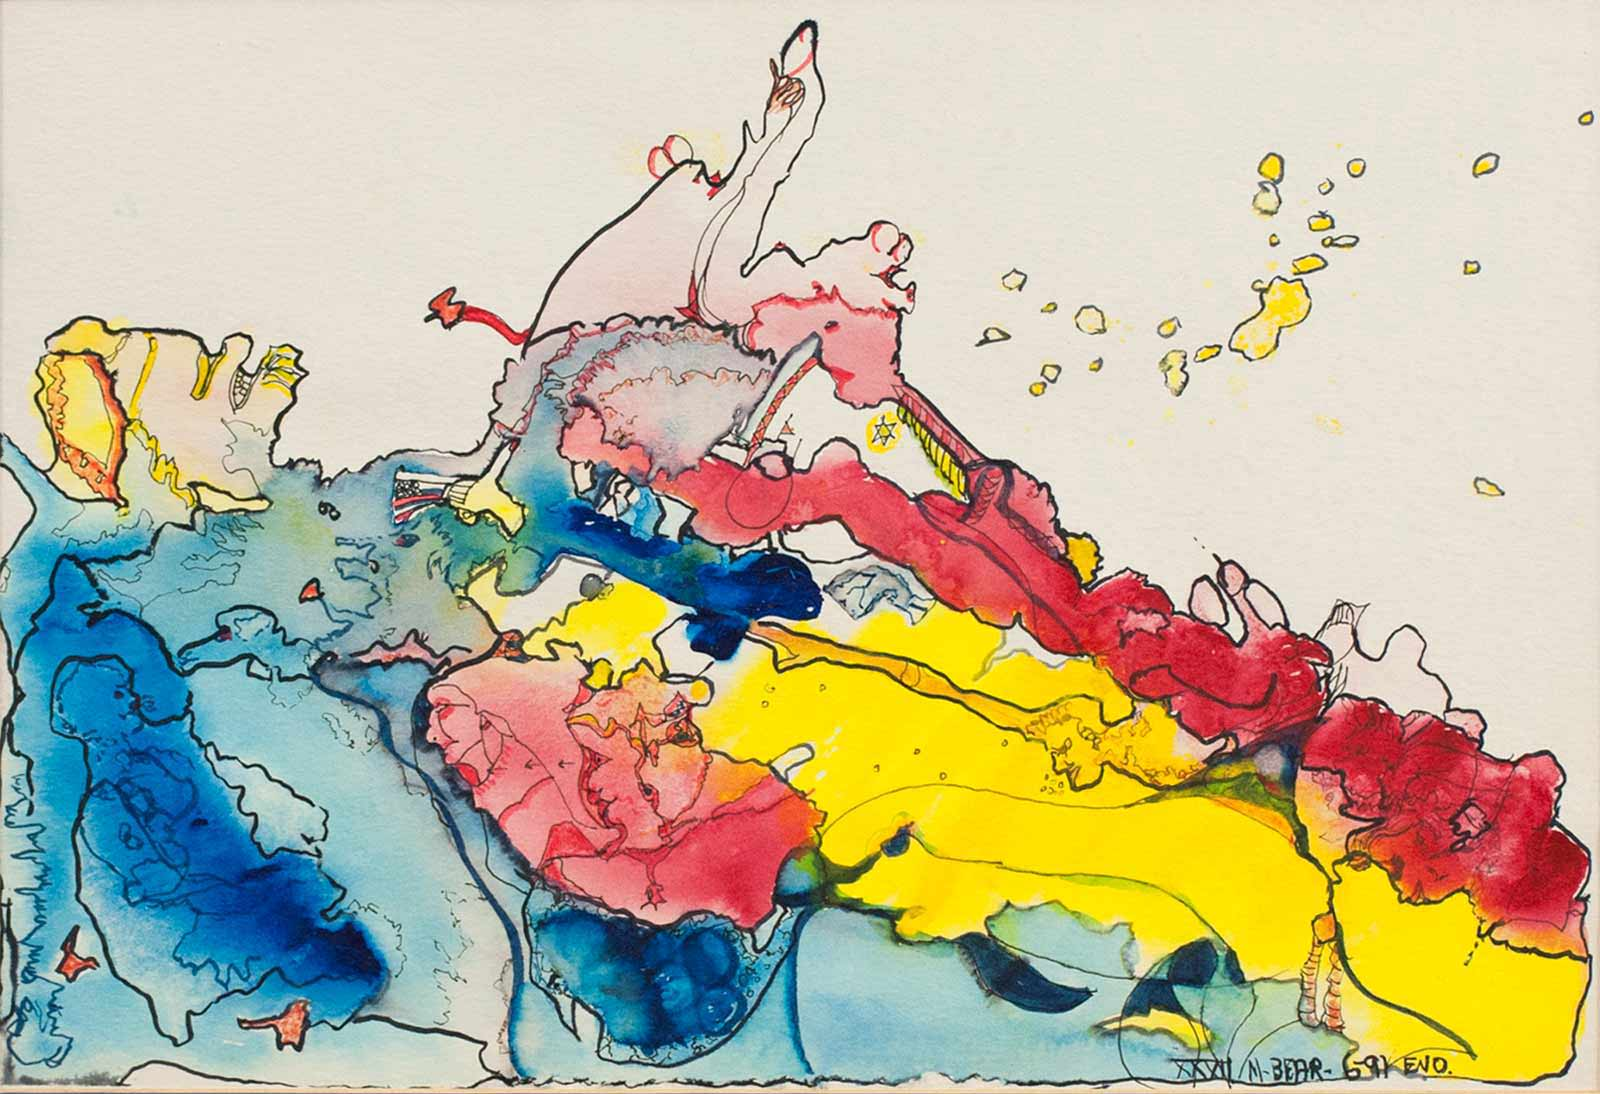 0531-MBS-06_1991-XXXII-Evo-watercolor-and-ink-paper_kbyxsd.jpg